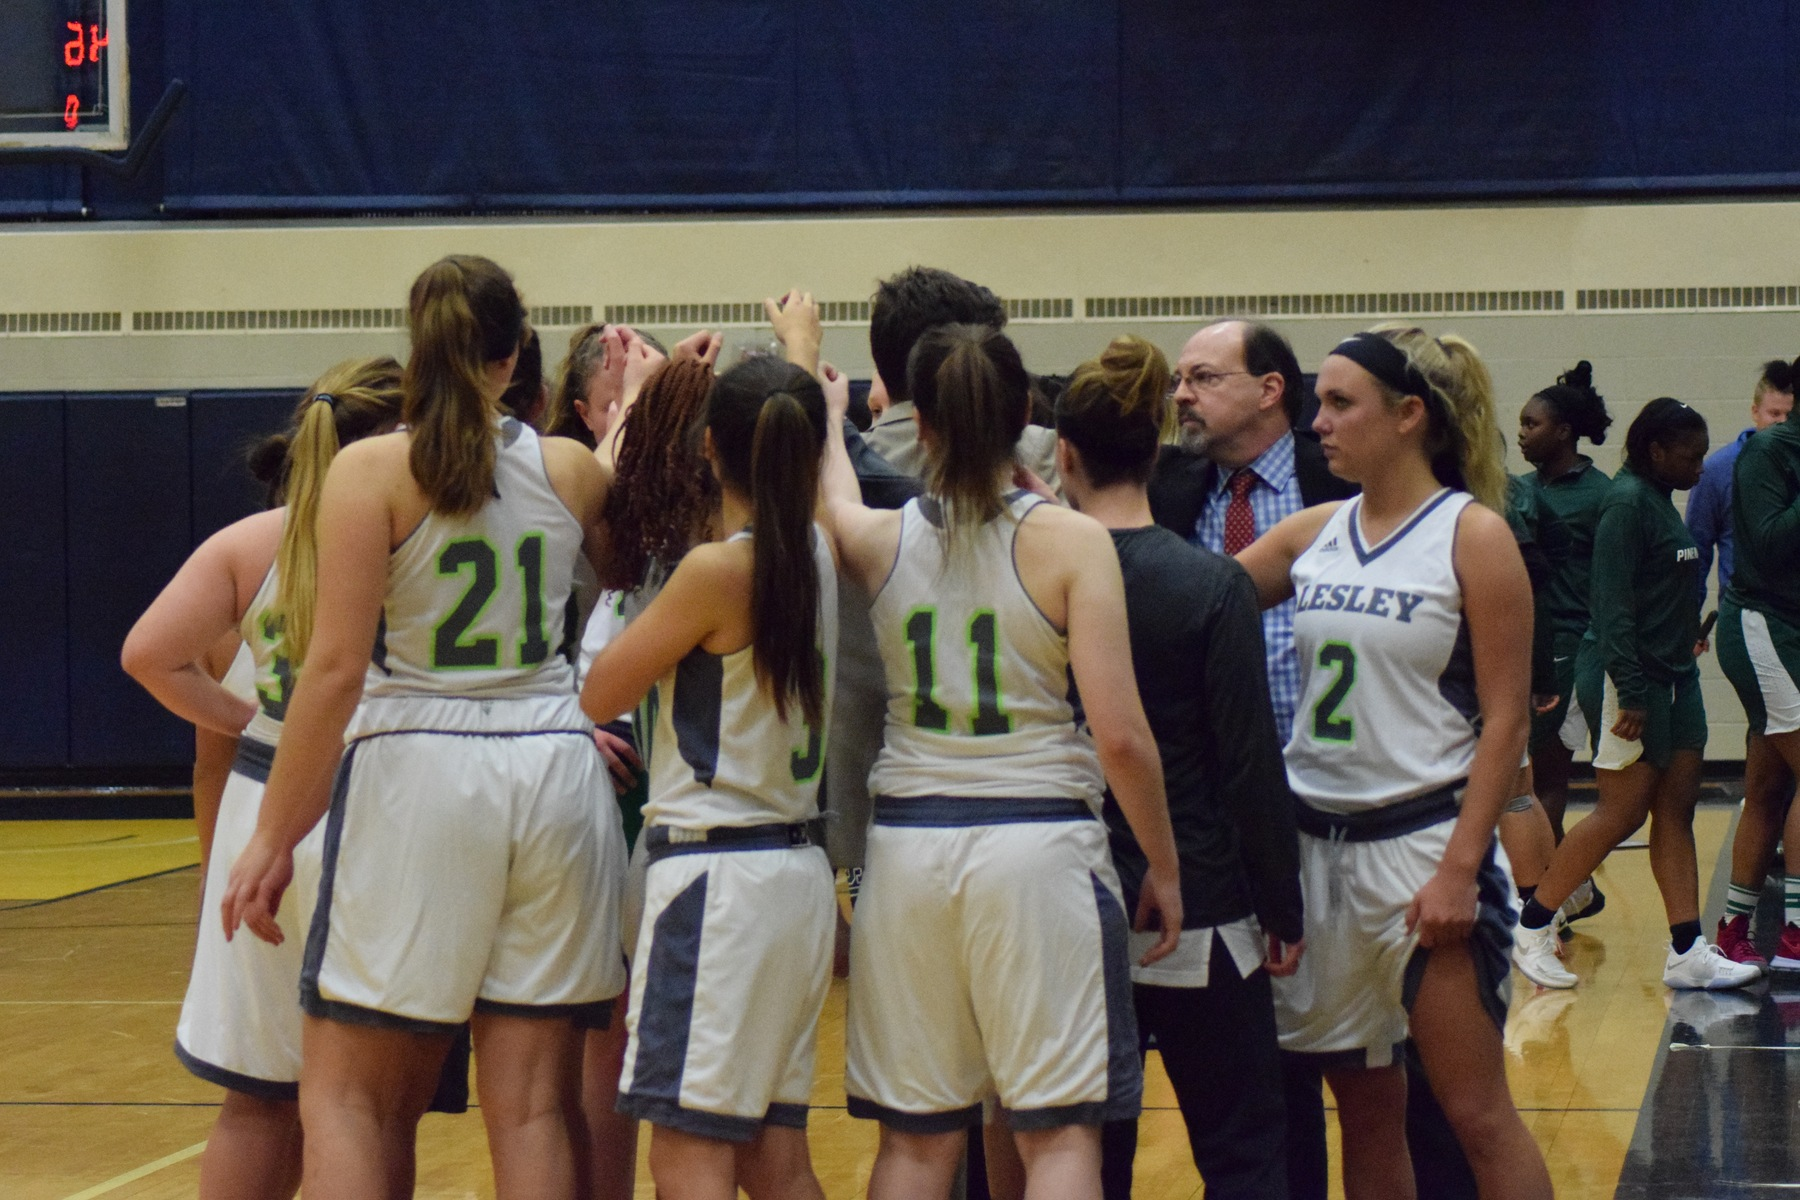 Lynx fall to Pine Manor, 95-62